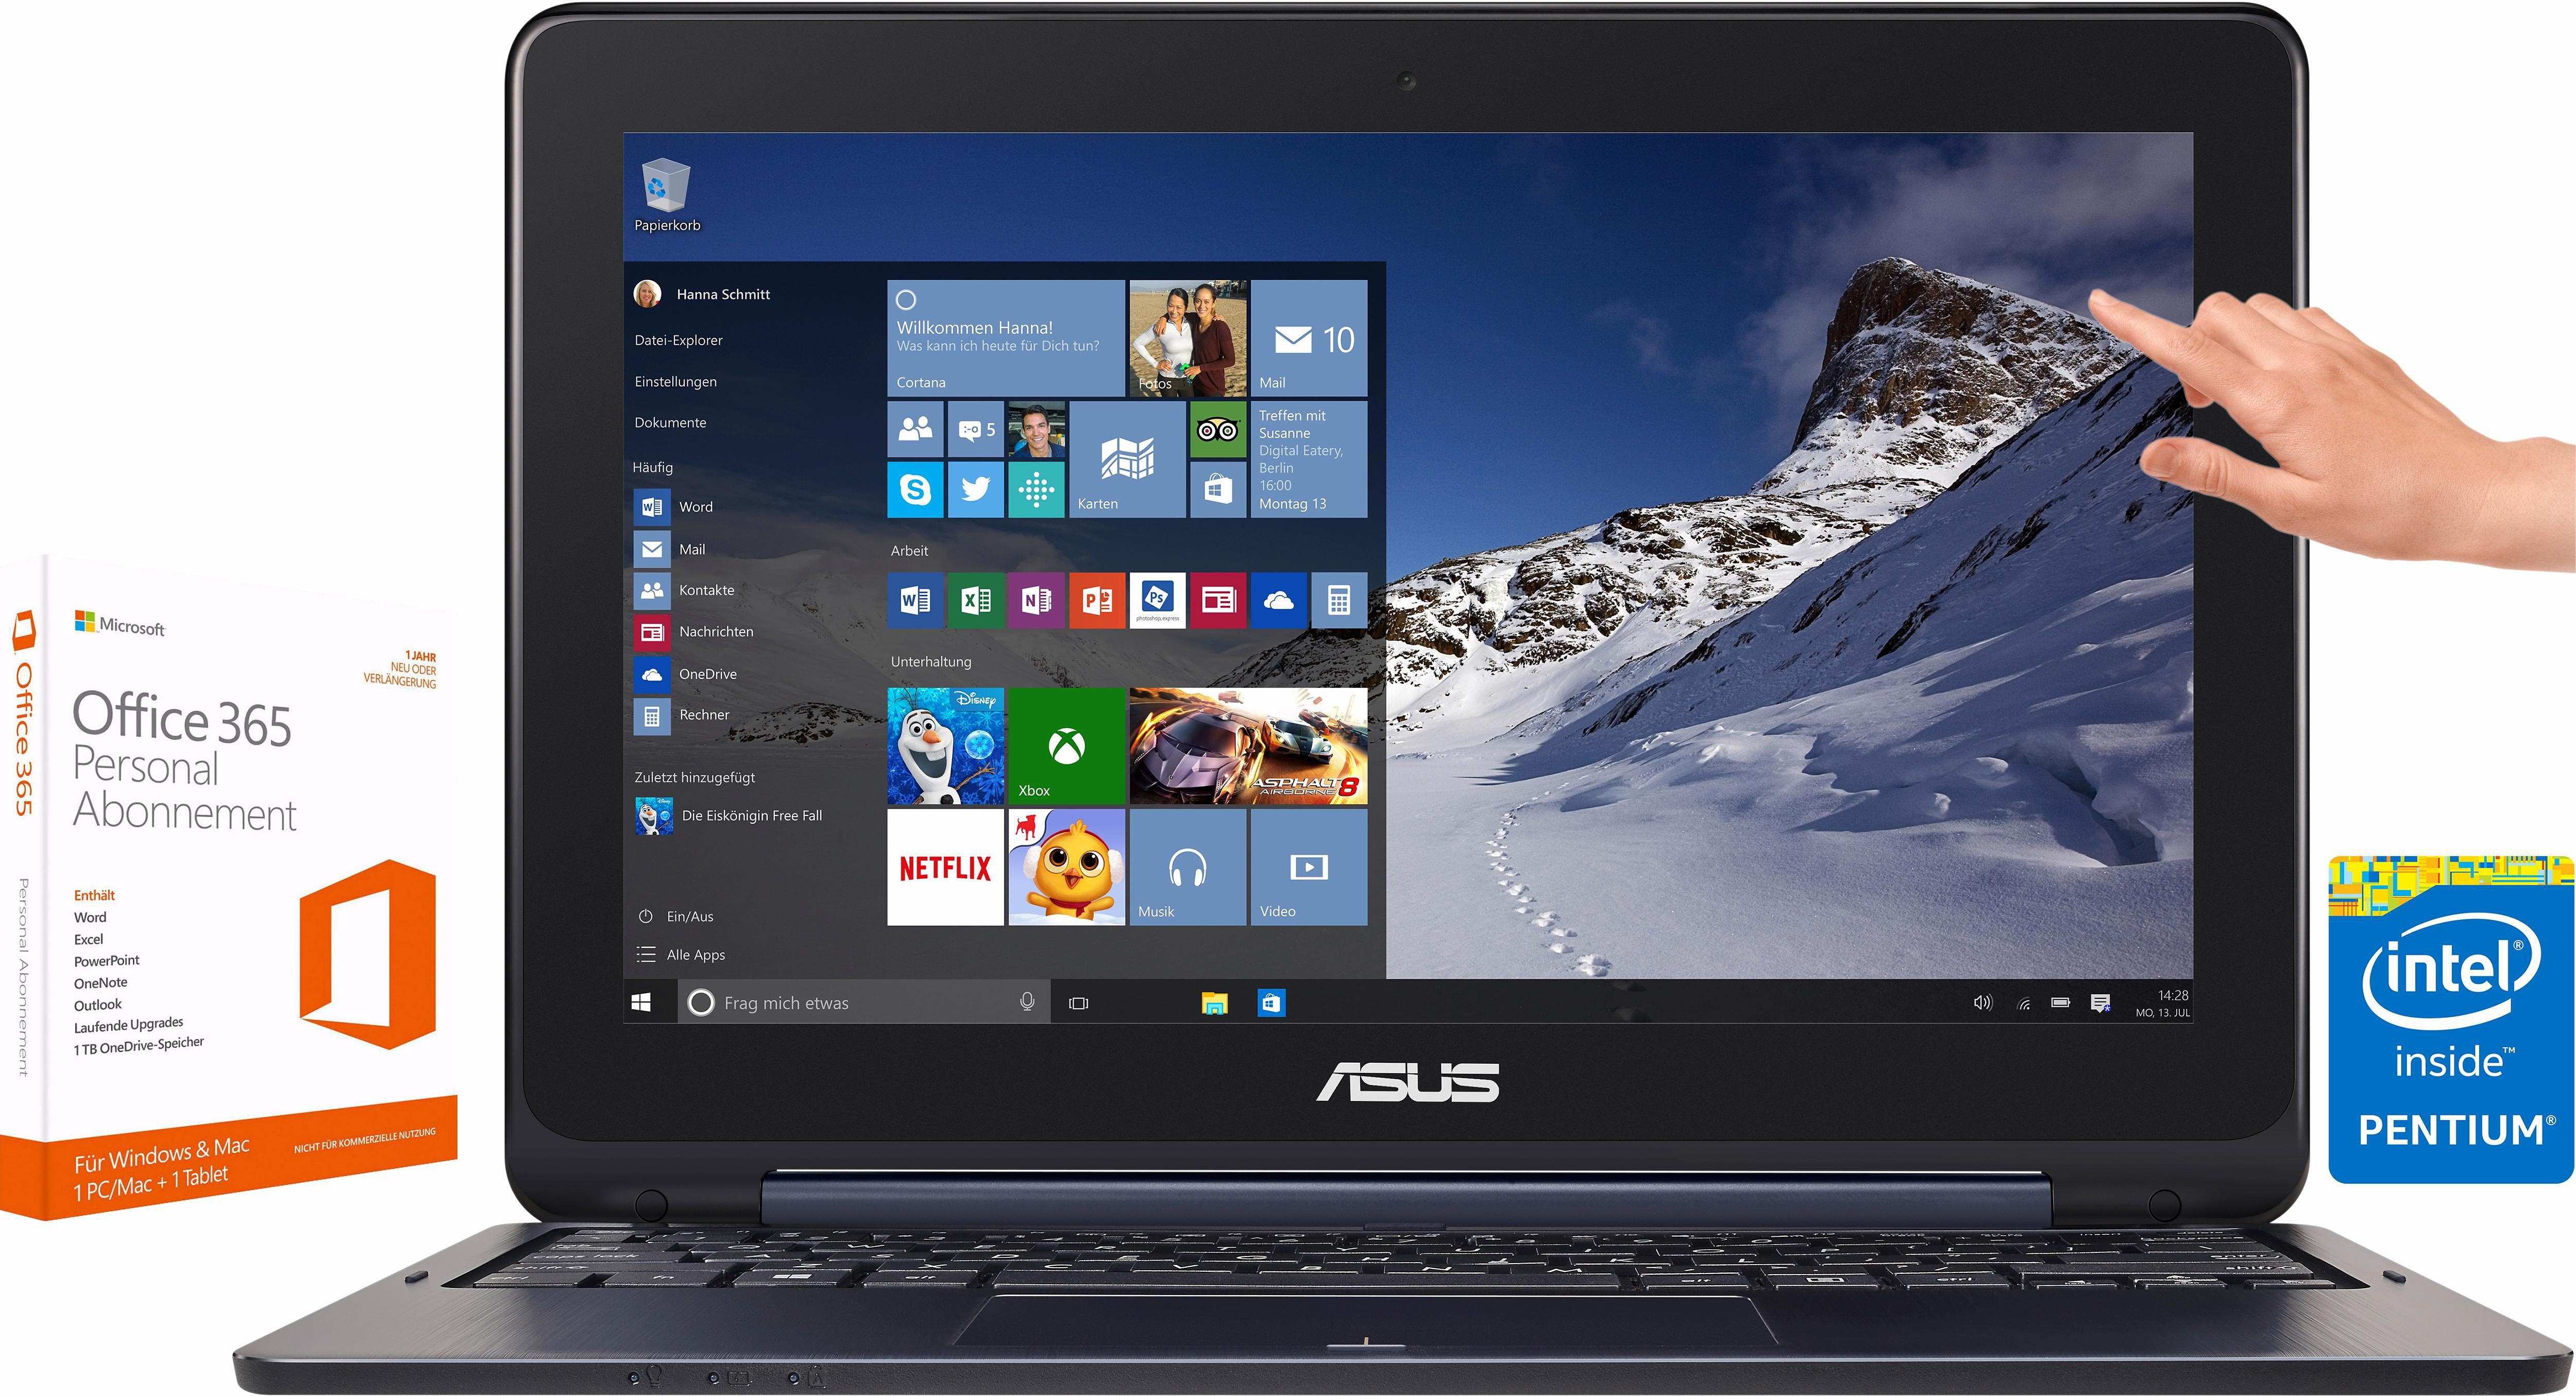 Asus TP200SA Notebook inkl. Office 365 Personal, Intel® Celeron™, 32 GB Speicher, 2048 MB